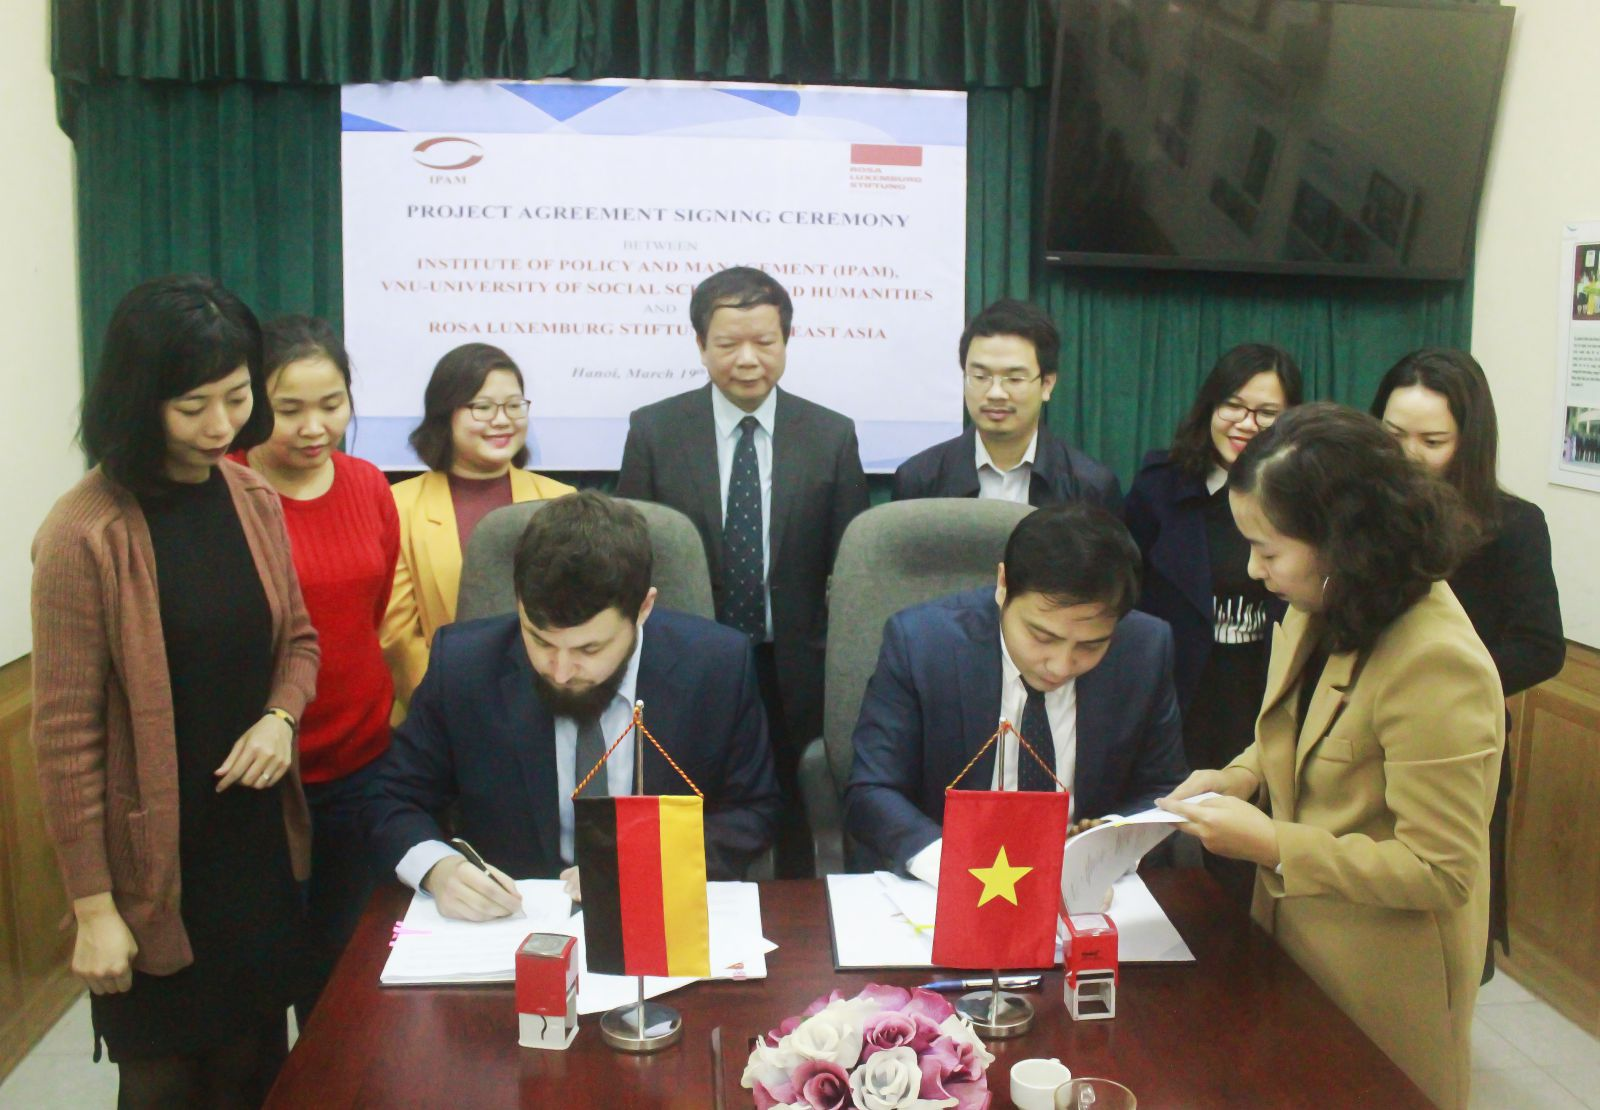 Project Agreement Signing Ceremony between IPAM and Rosa Luxemburg Stiftung Southeast Asia.